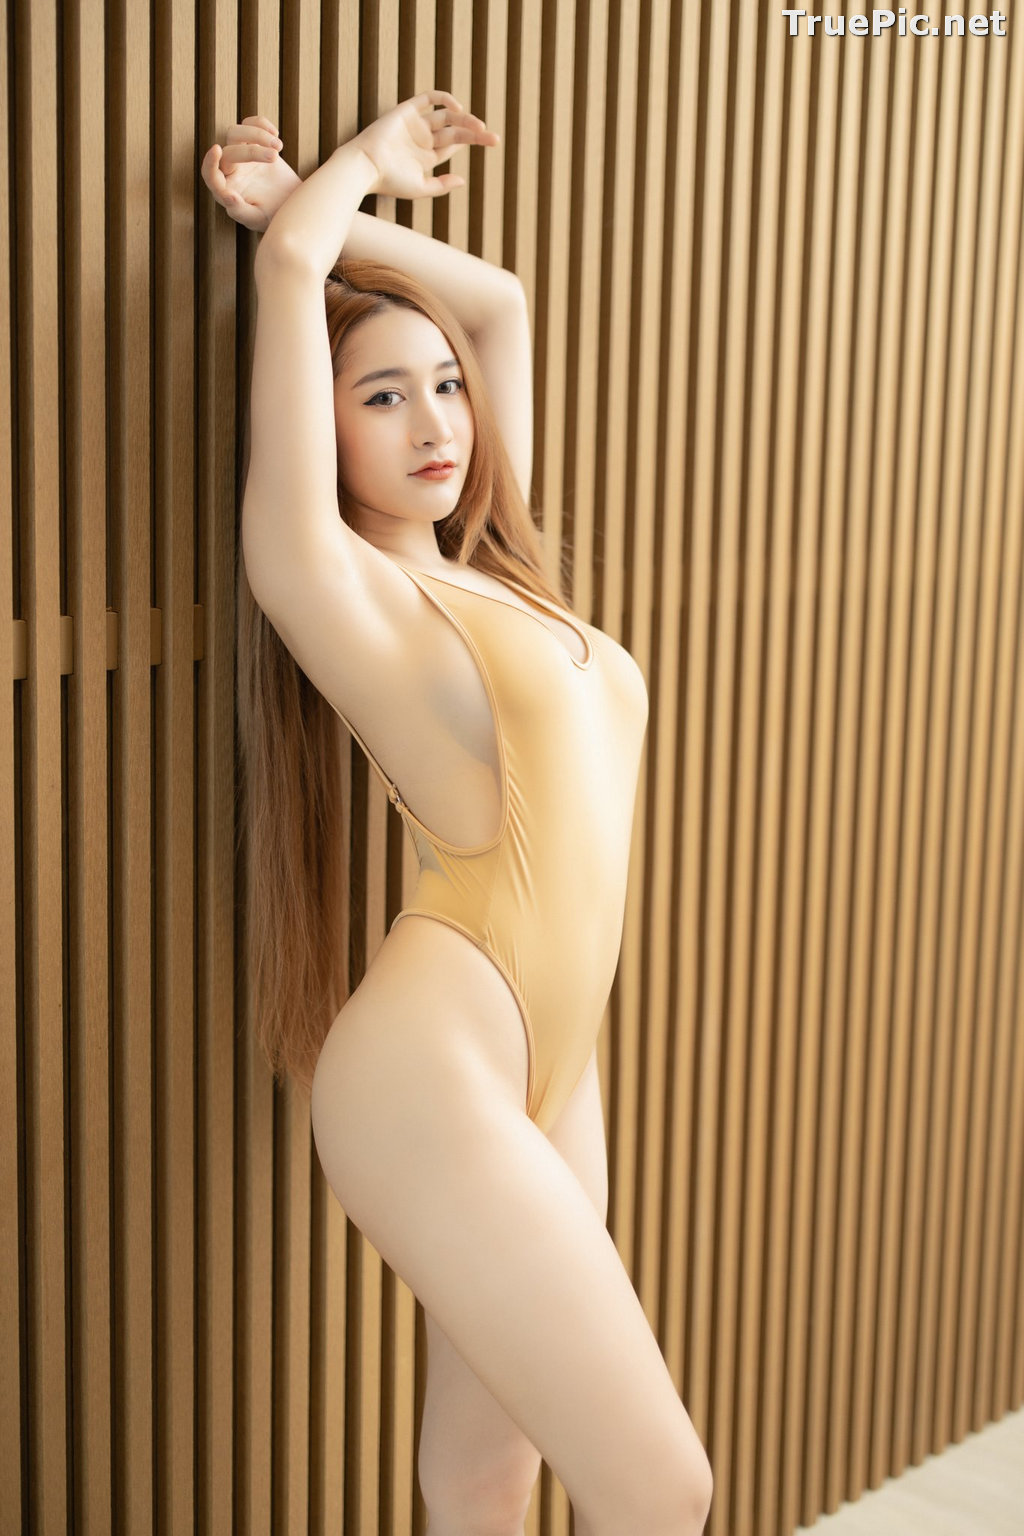 Image Thailand Model - Kankanit Pinchaiyapat - Yellow and Purple Swimsuit - TruePic.net - Picture-3